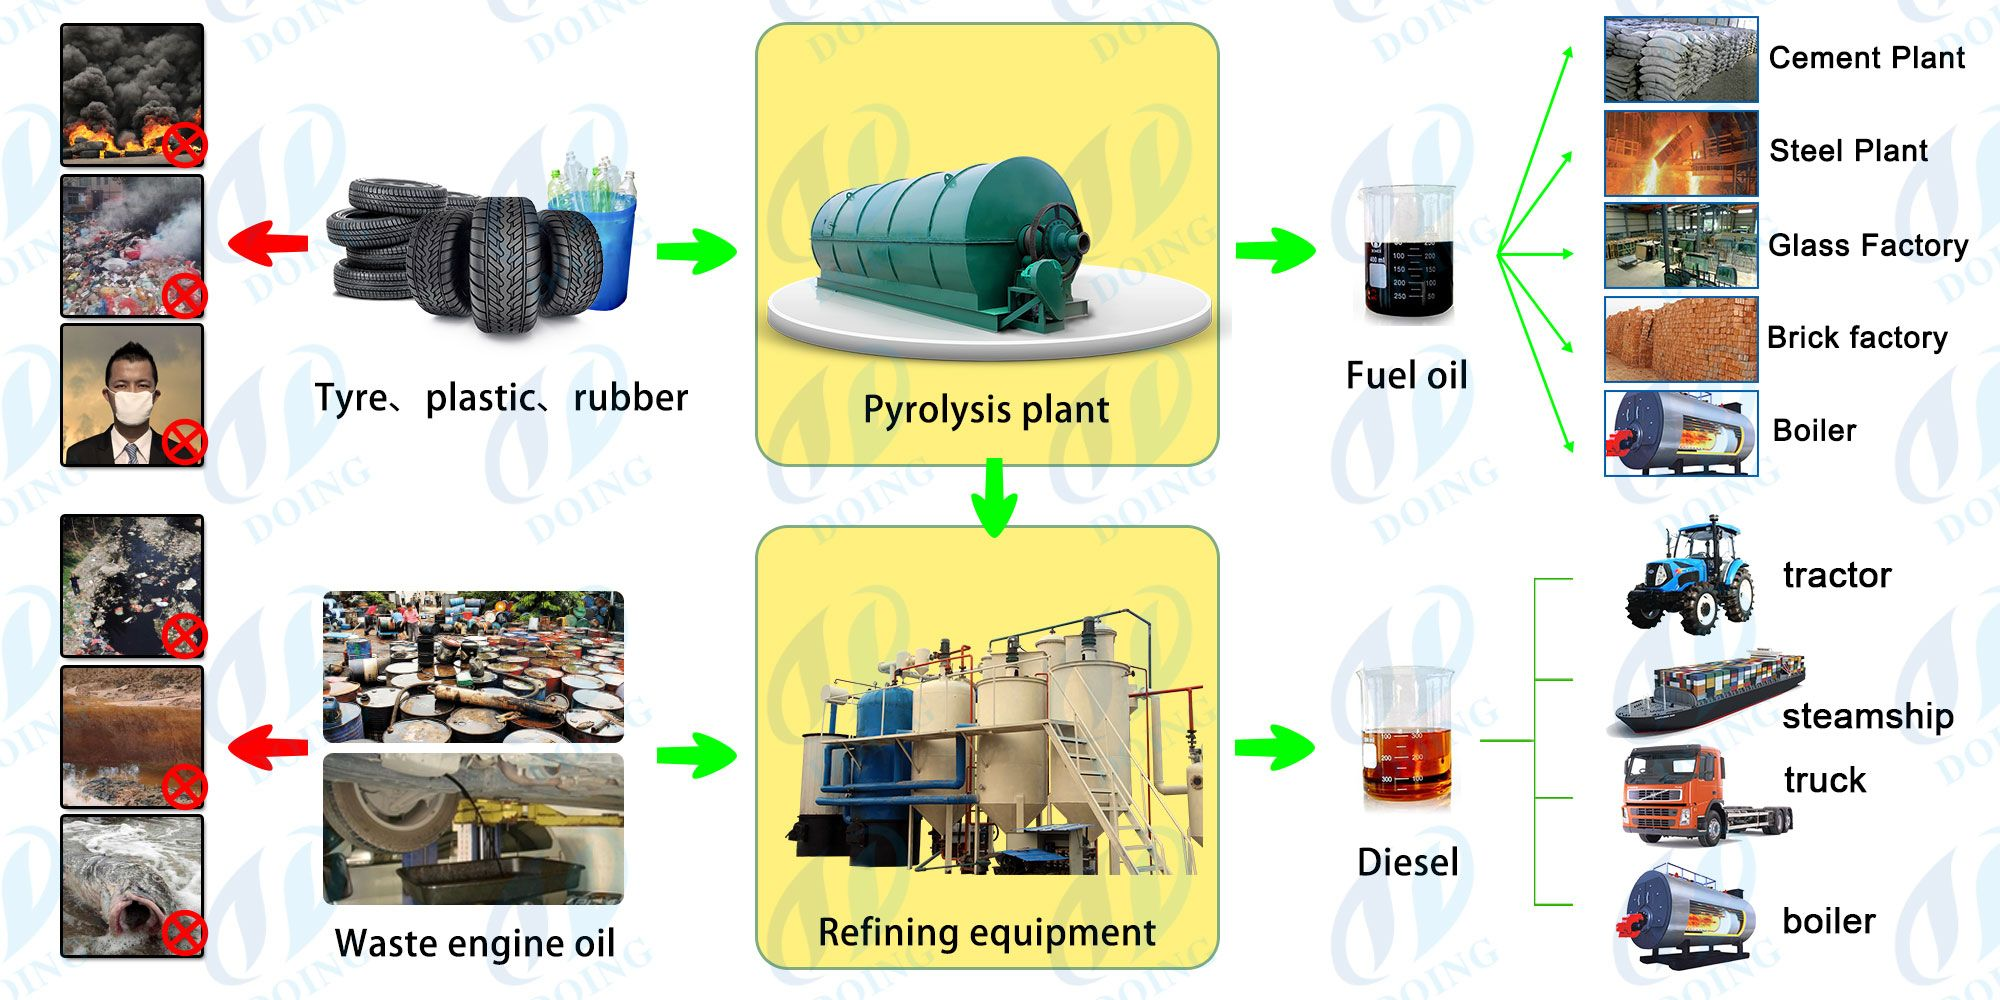 Waste Tyre Recycling To Diesel Oil Plant Diesel Oil Oil Plant Tyres Recycle